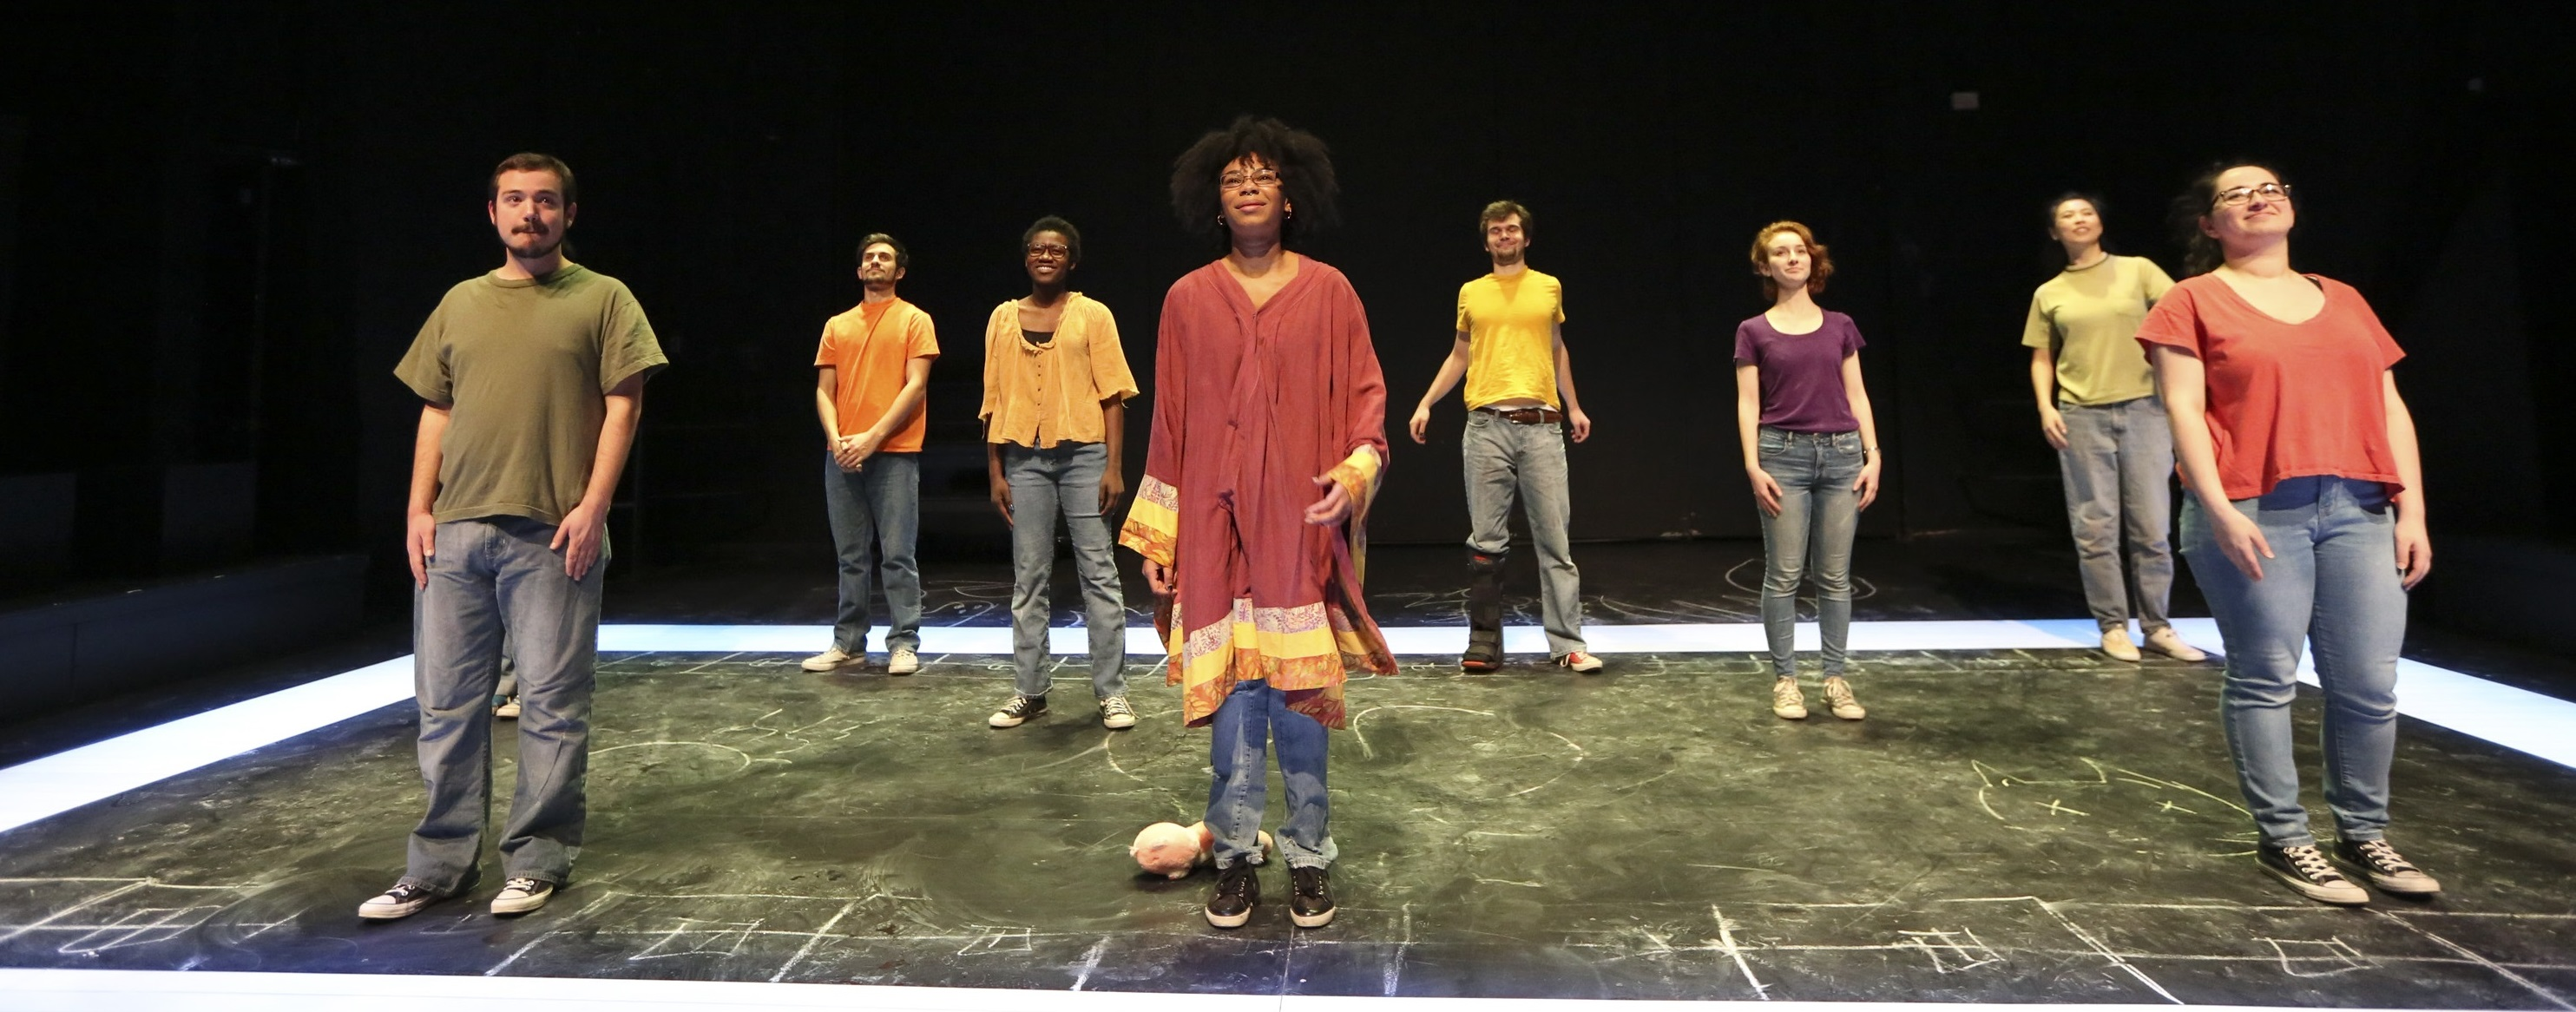 Visionary project leverages theatre to raise climate change awareness